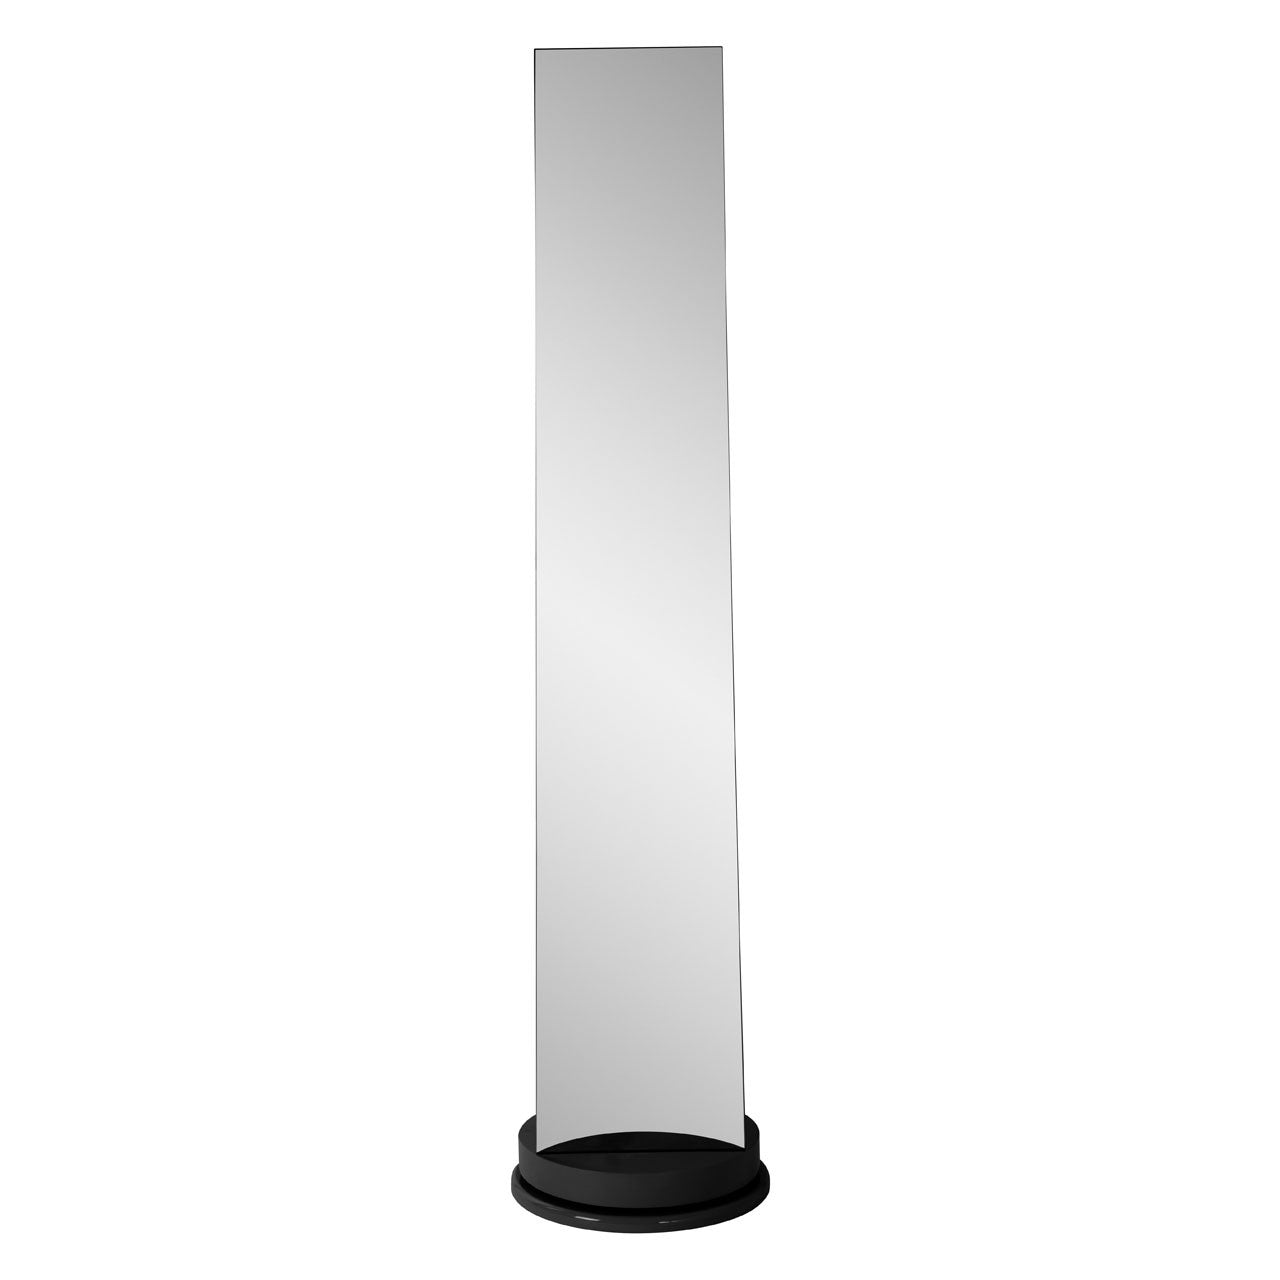 Black Floor Standing Revolving Mirror with Storage